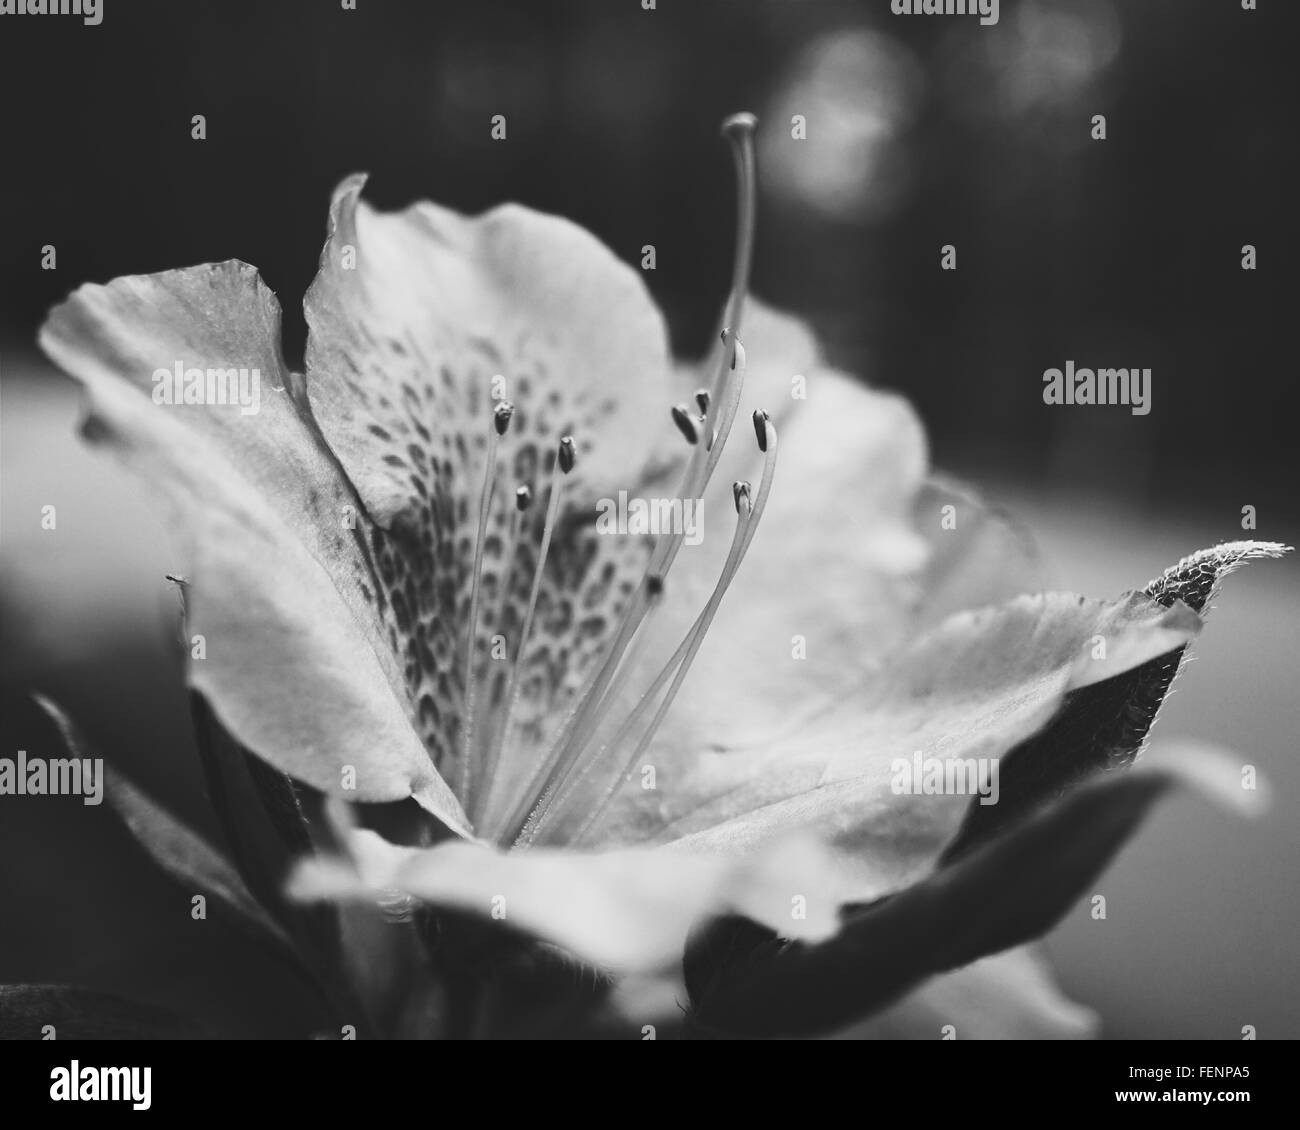 Orchid flower black and white stock photos images alamy close up view of orchid flower stock image mightylinksfo